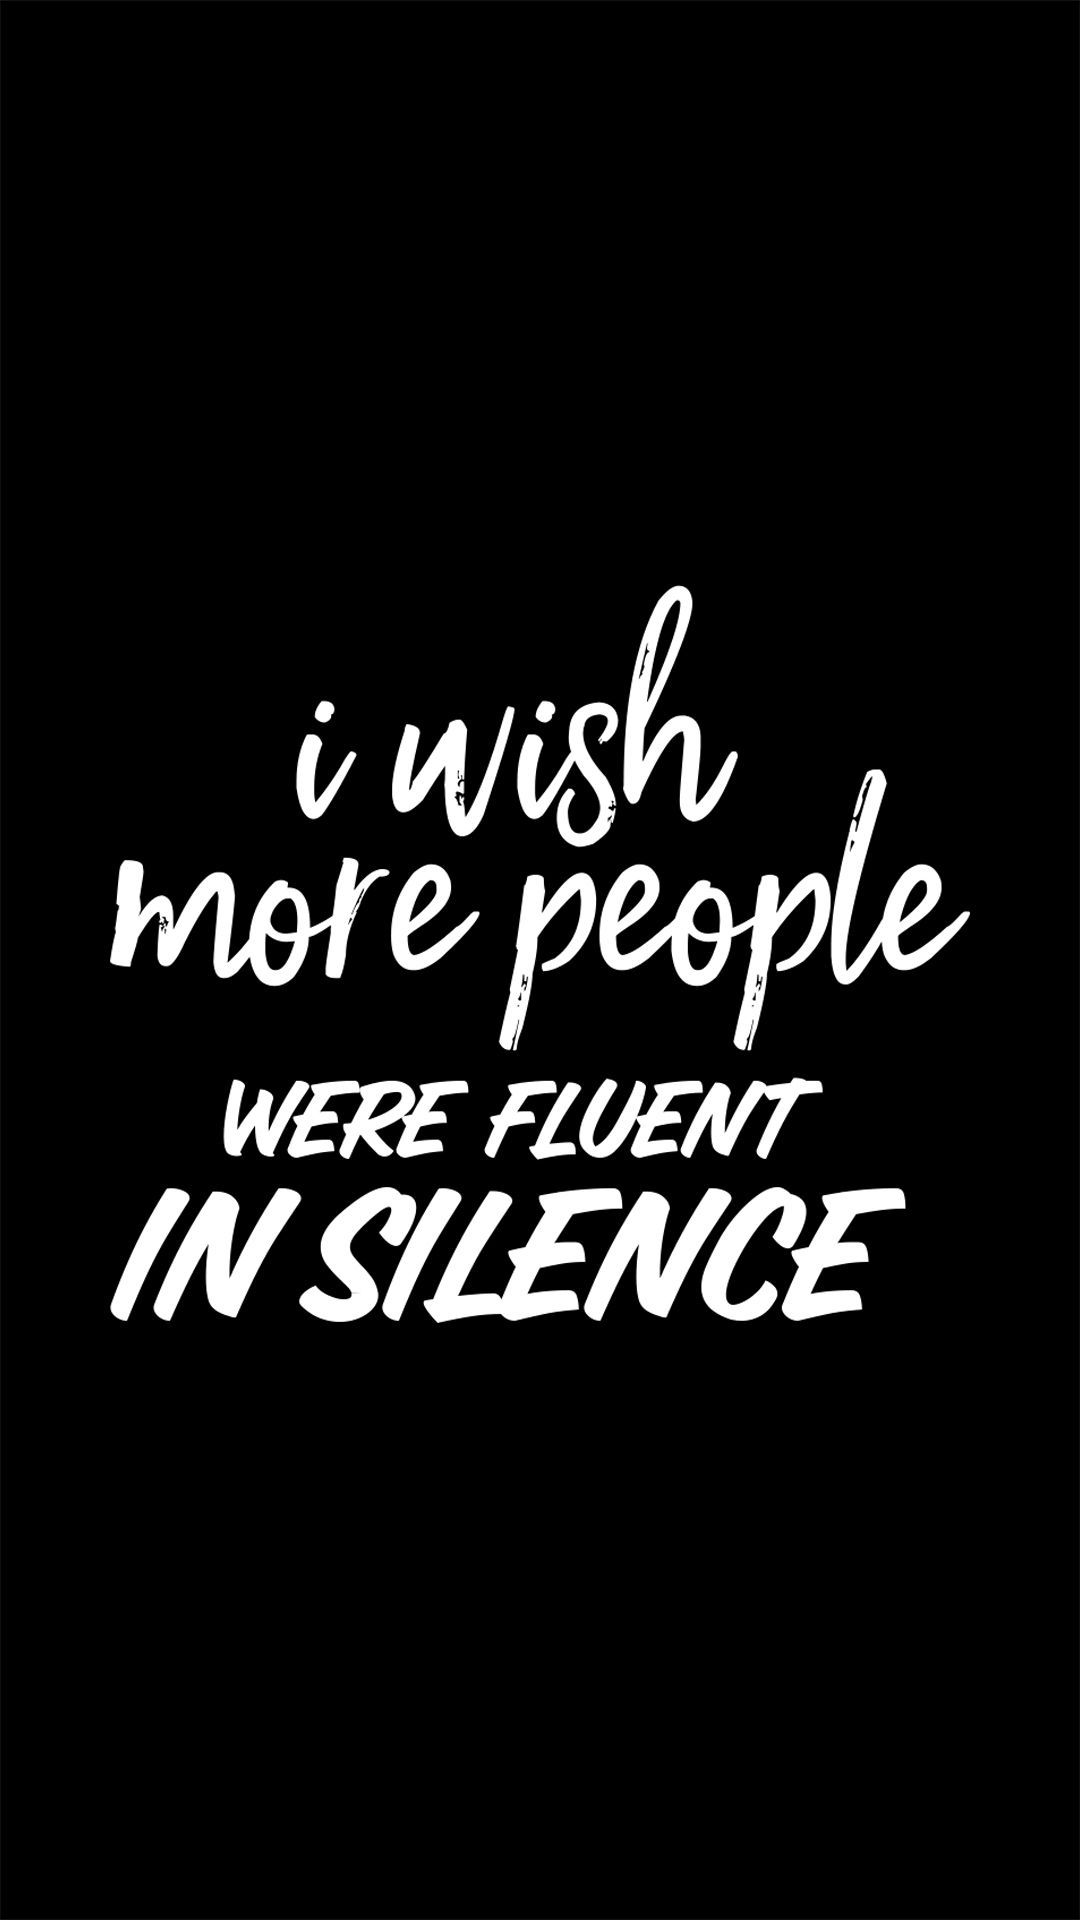 Quotes Sayings Funny Words Jokes Sarcastic Quotes Funny Funny Quotes Jokes Quotes